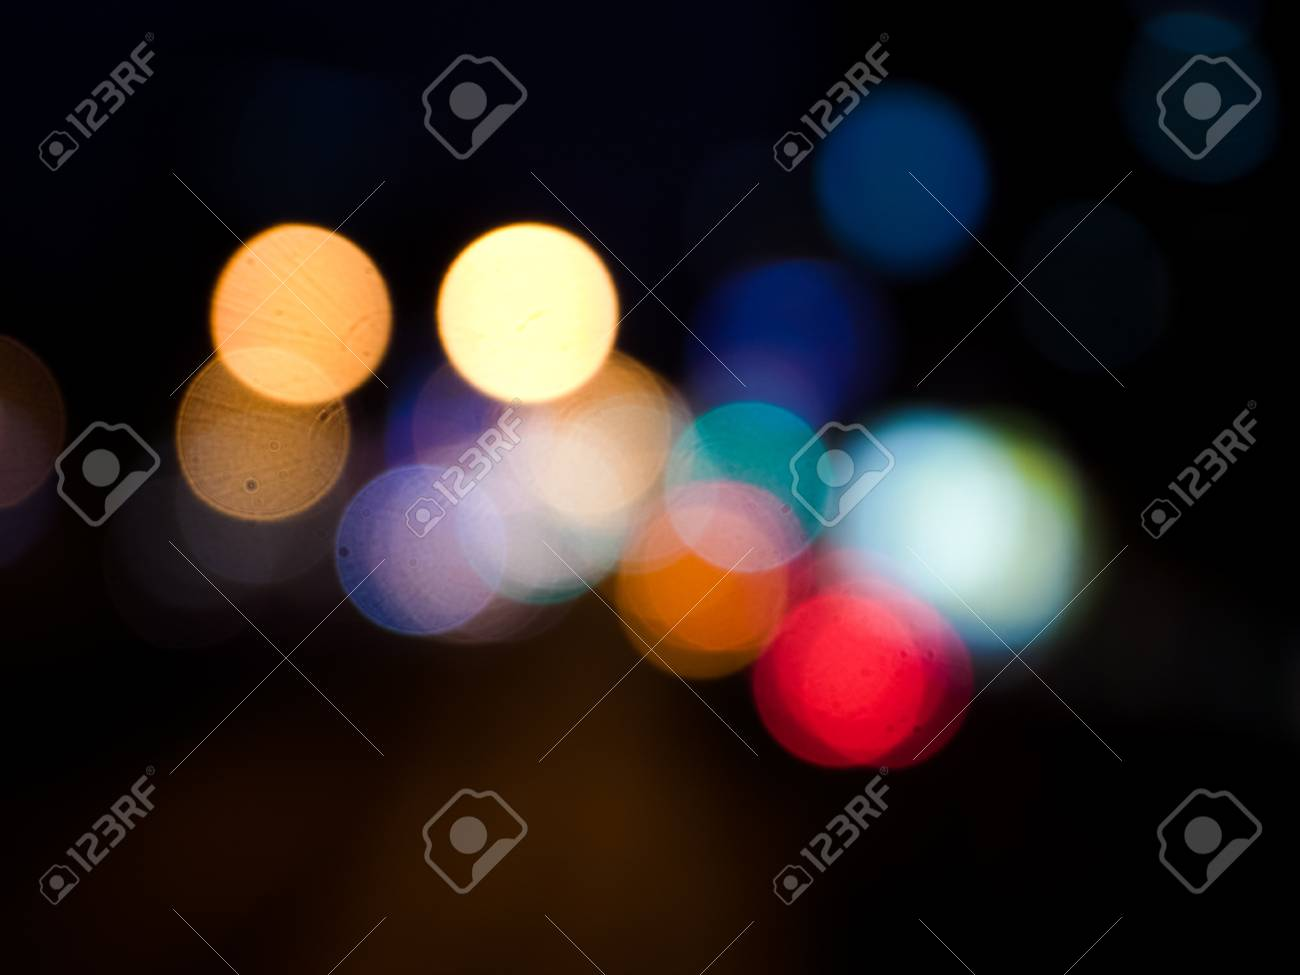 Artistic style-Defocused urban abstract texture background for your design Stock Photo - 15544616